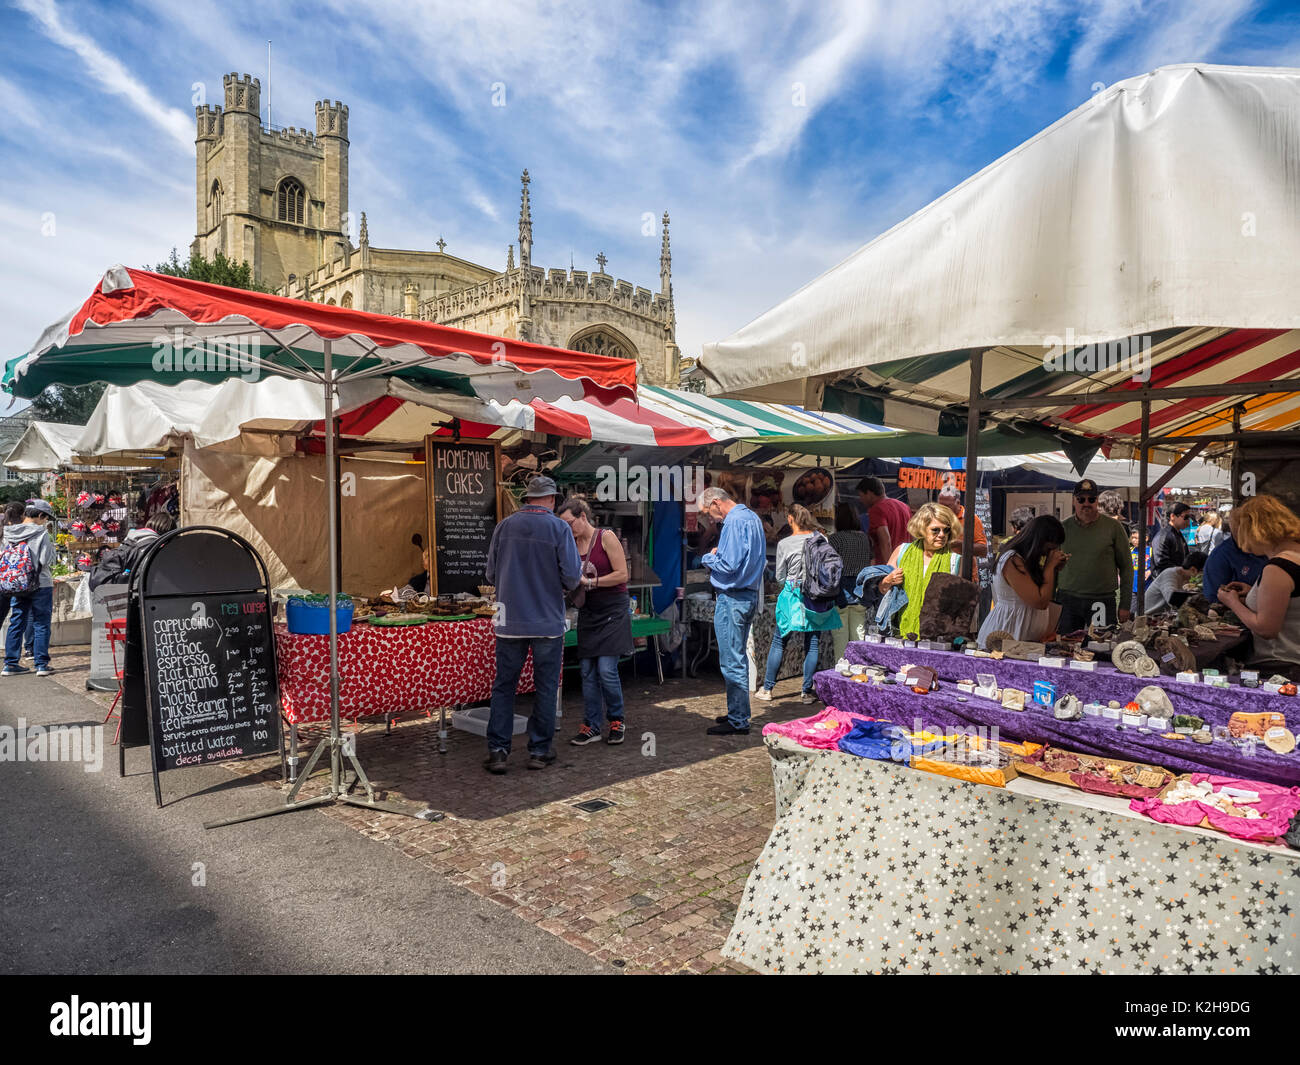 CAMBRIDGE, UK:  The Historic Market in Market Square with Great St Mary's Church  in the background - Stock Image